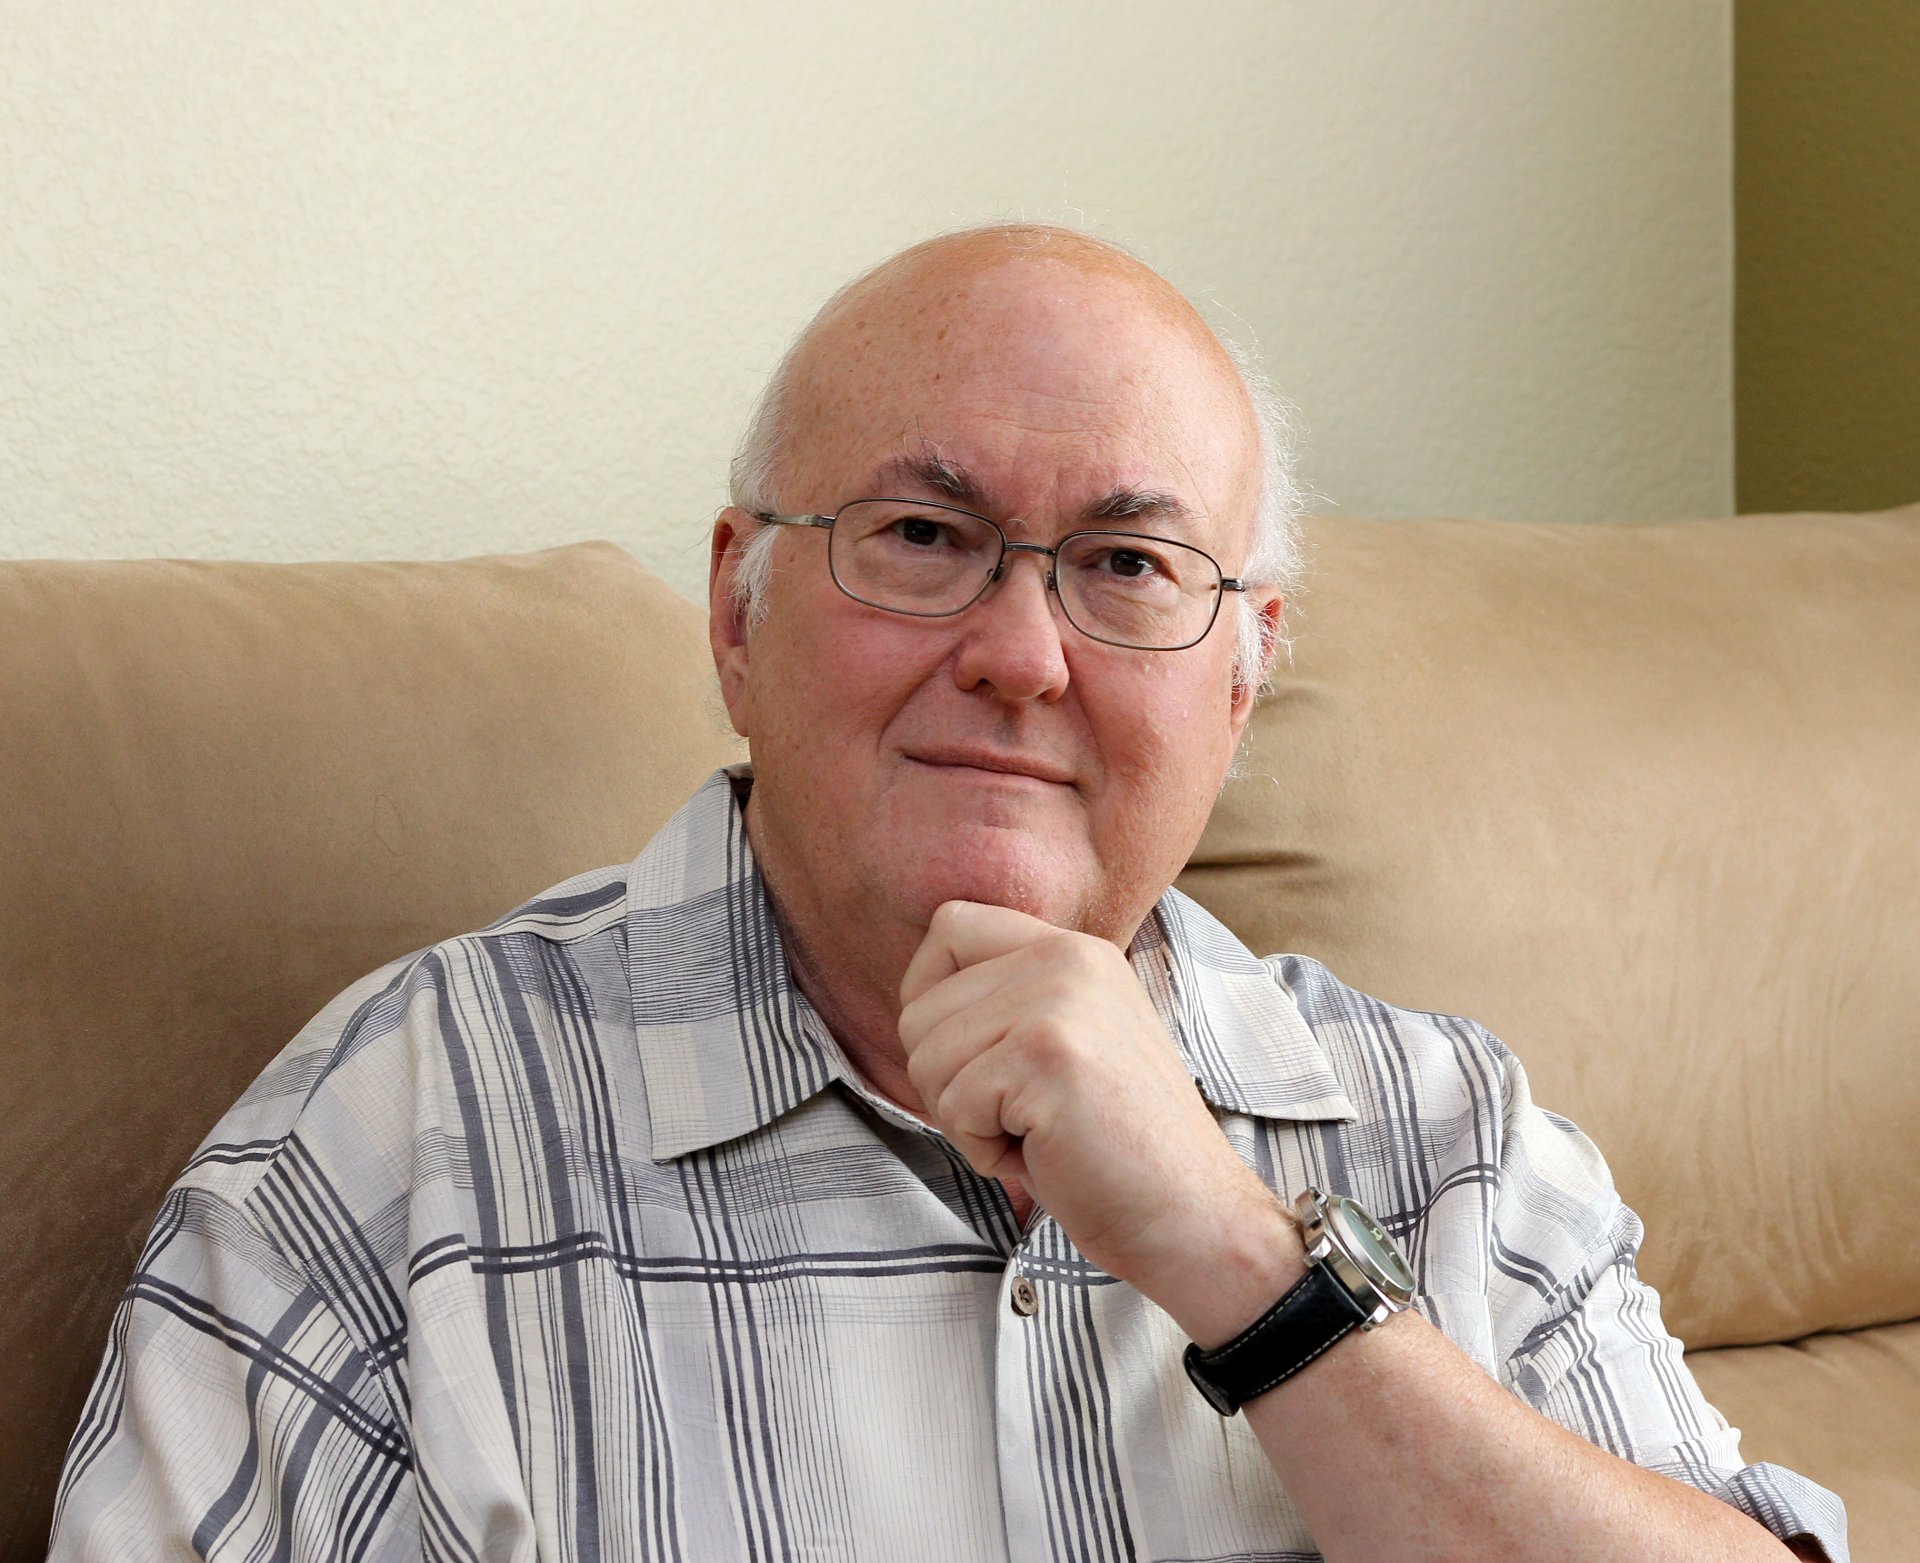 Alan C. Brawn runs Brawn Consulting, an AV and digital signage business consulting and outsourced services firm. Alan is an industry veteran and a recognized author for leading industry publications.    Email: alan@brawnconsulting.com